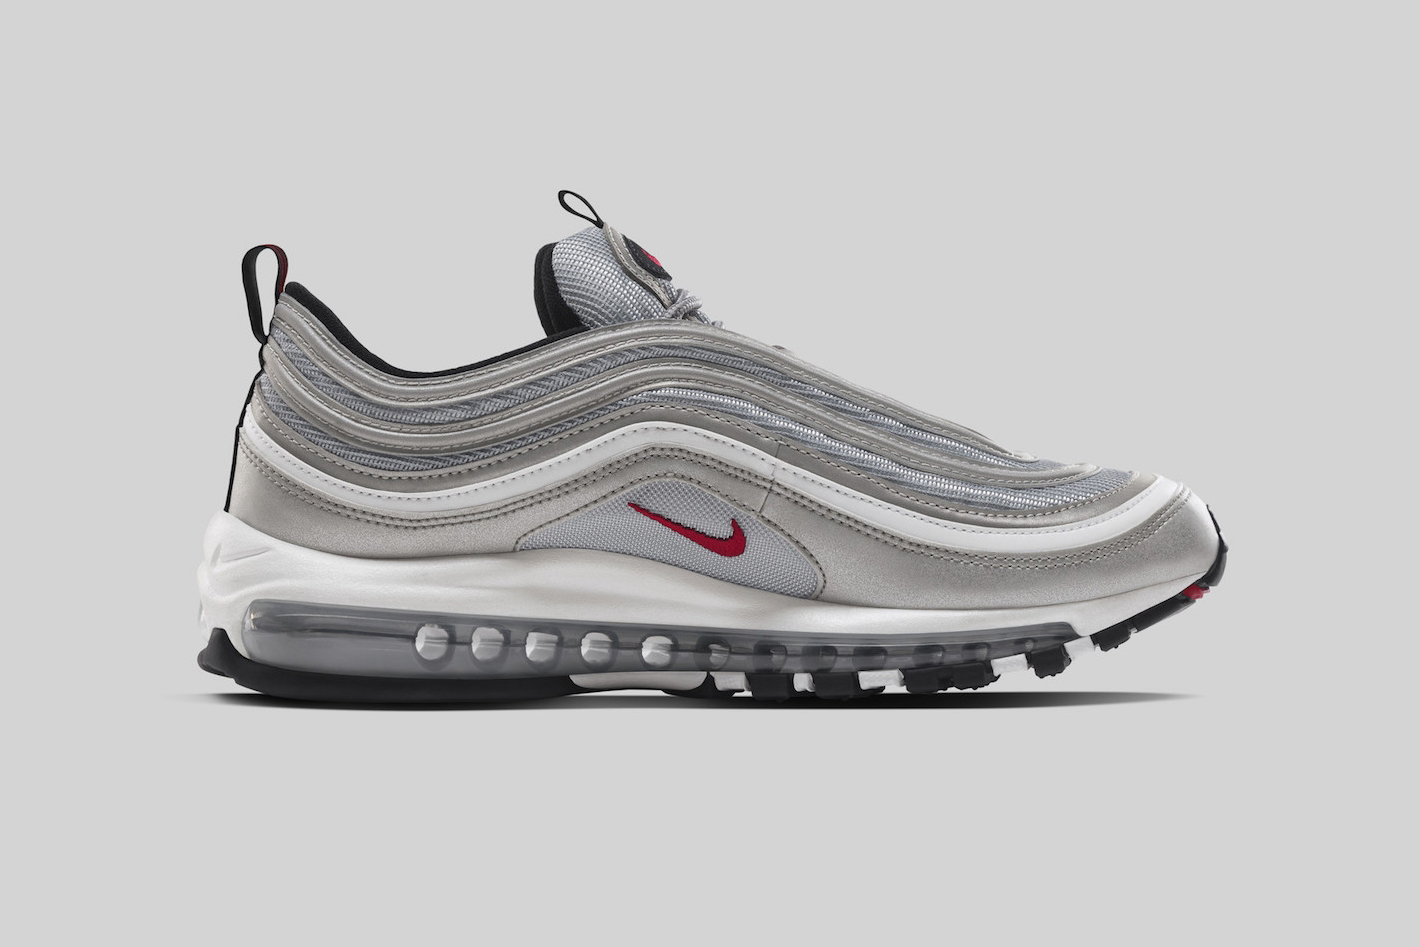 nike air max 97 silver special launch event hypebeast. Black Bedroom Furniture Sets. Home Design Ideas